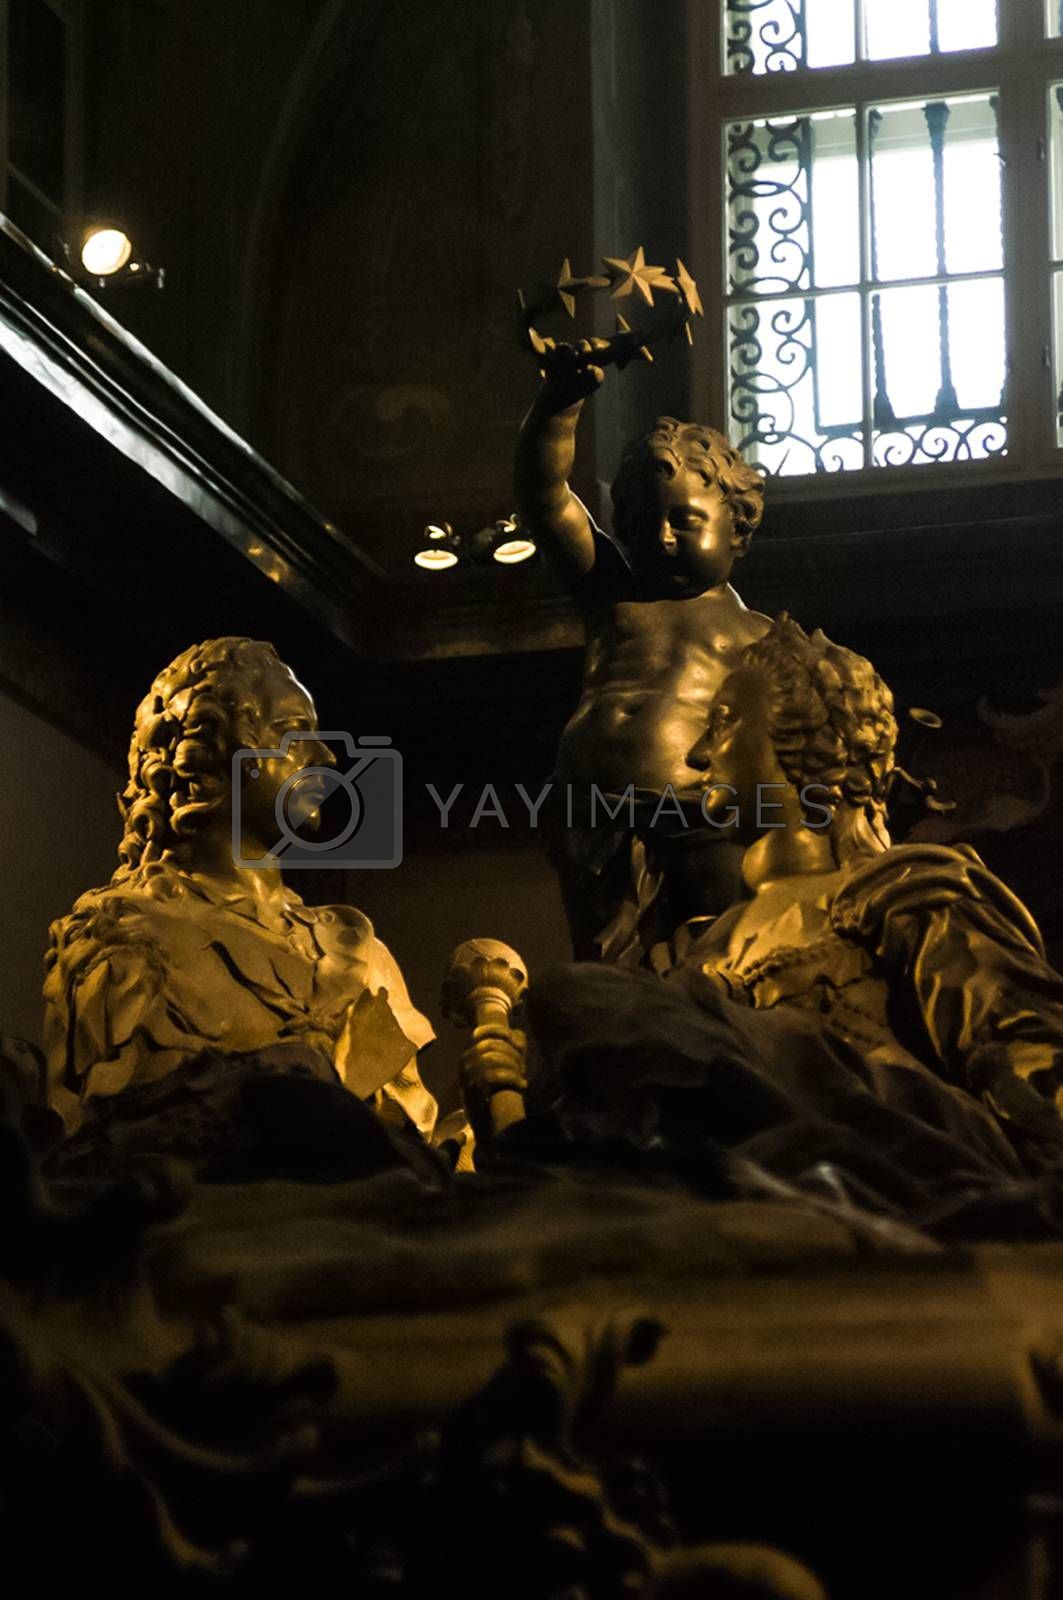 Vienna, Austria - January 20, 2014: The sights of Vienna, the interiors of the building of cathedrals and temples. Antique buildings of temples and cathedrals in the Gothic and Byzantine style.